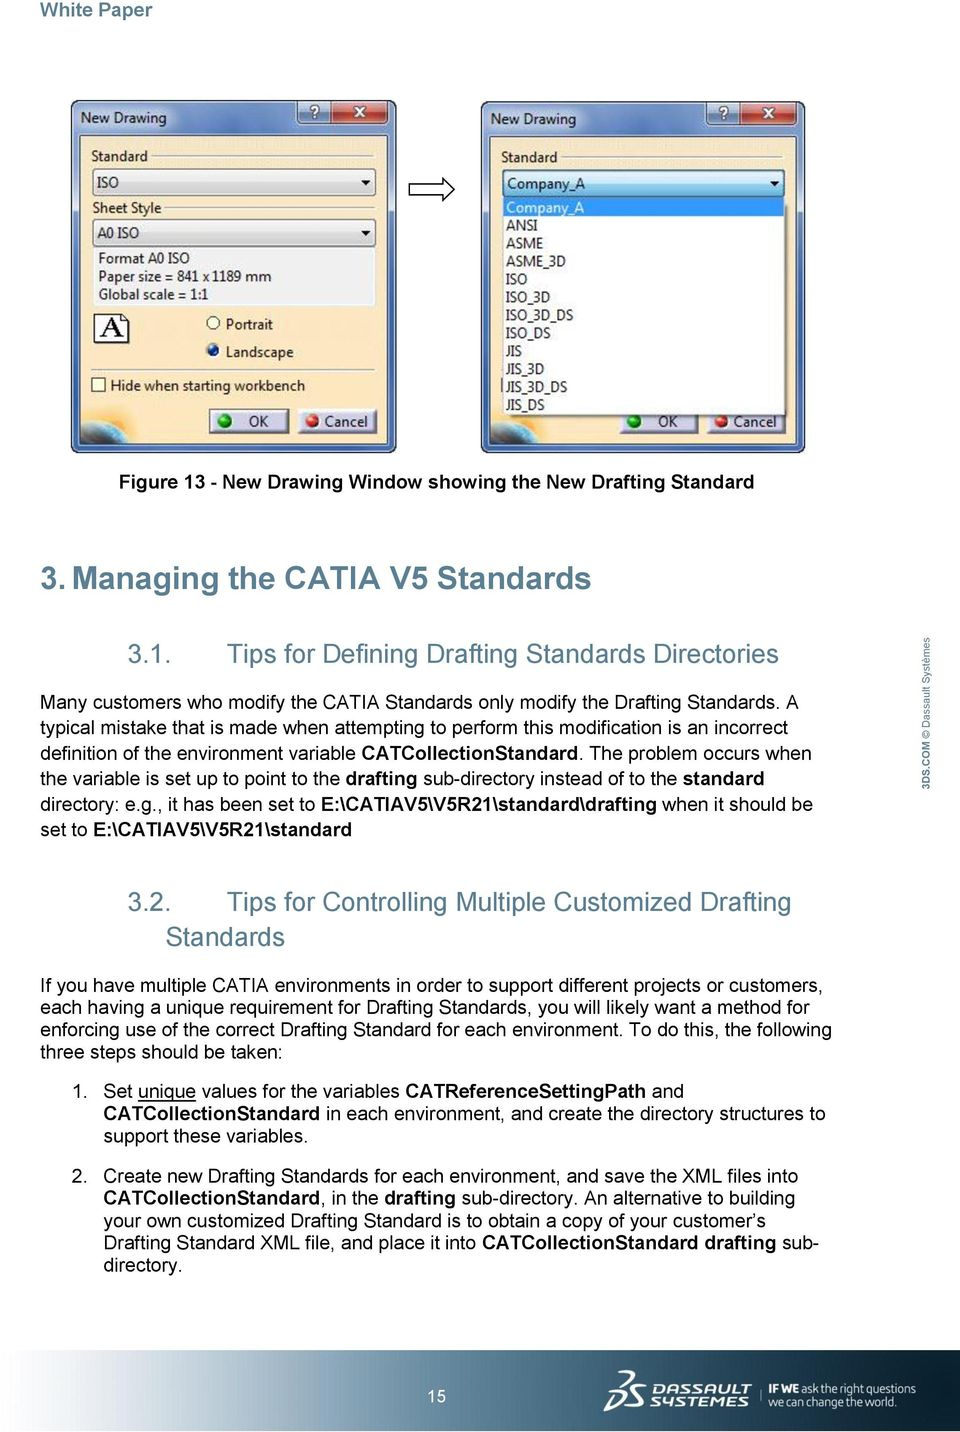 CATIA V5 Administration Customizing Standards - PDF